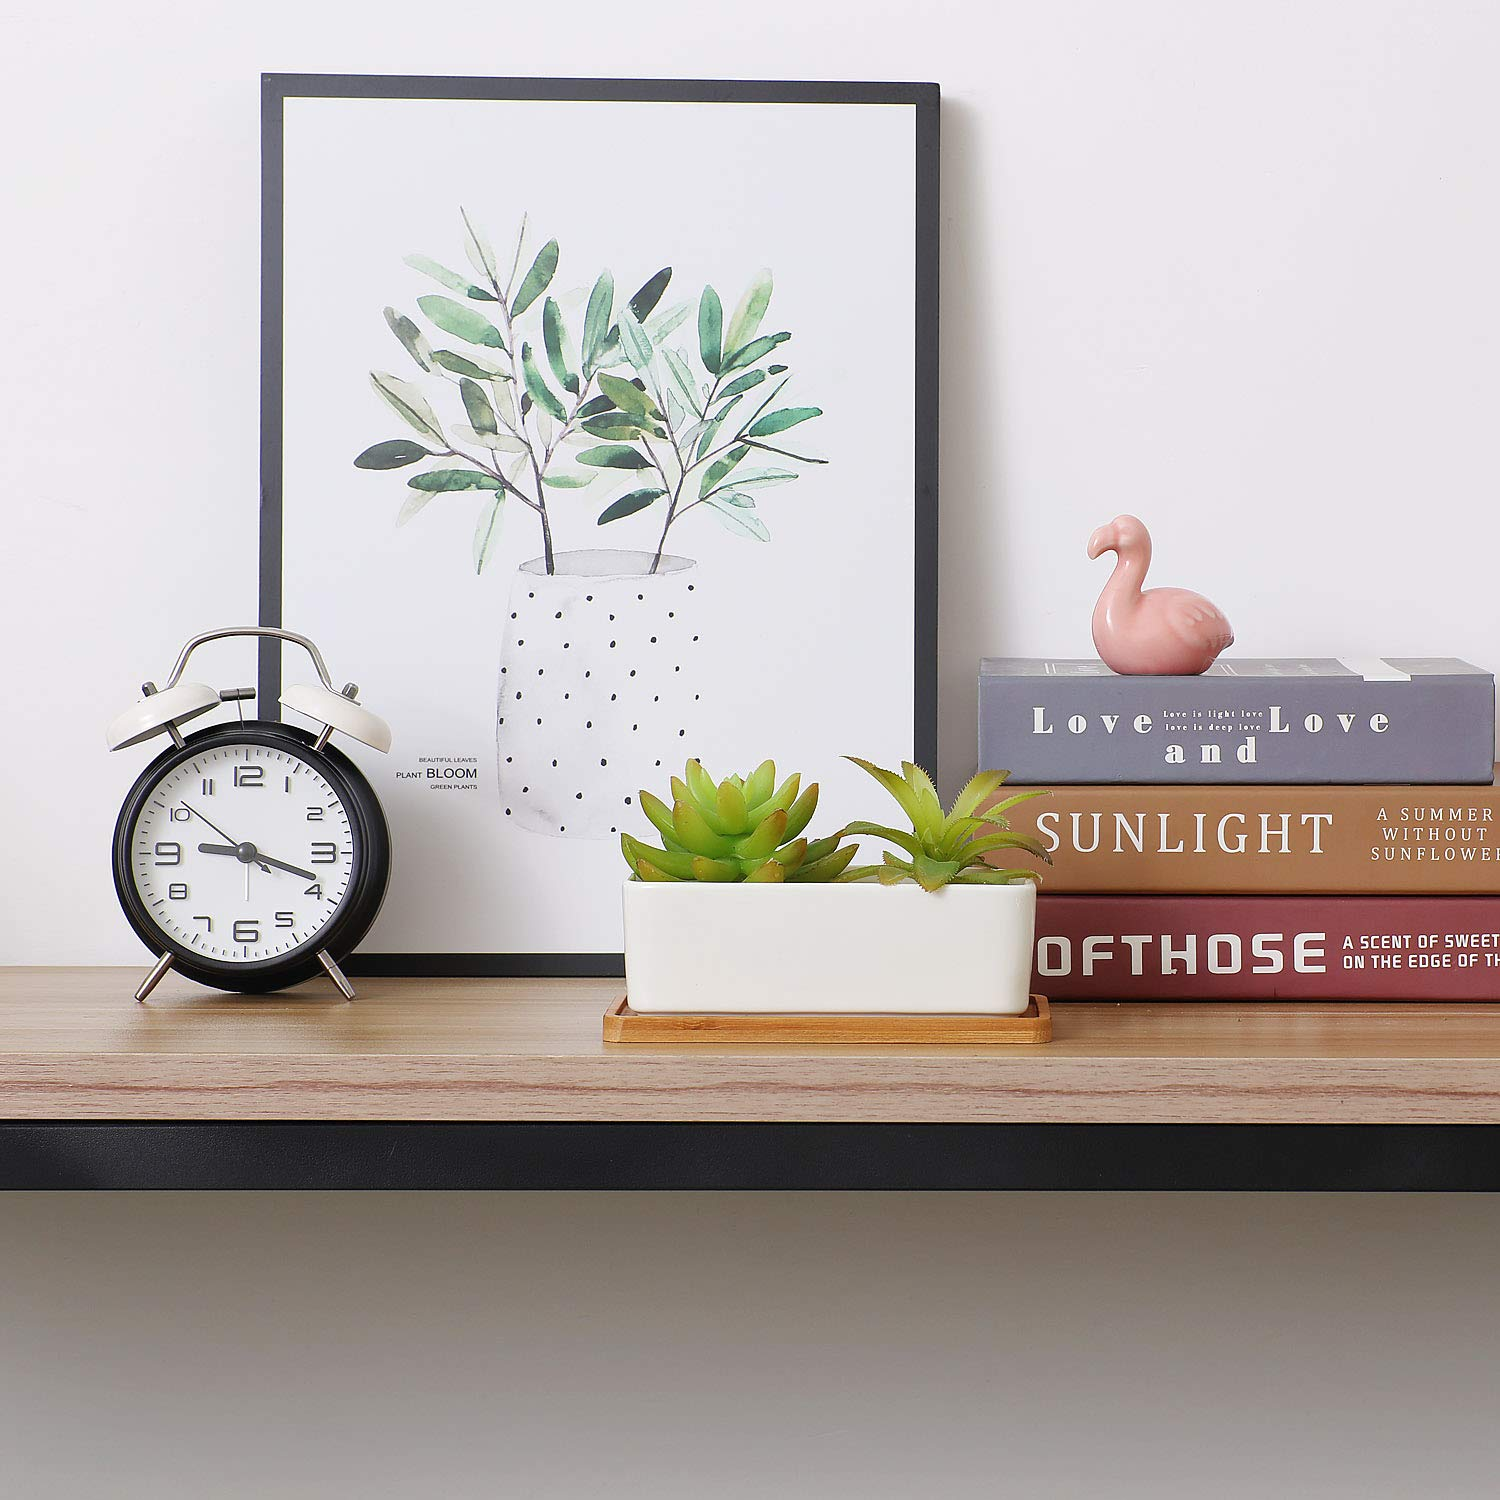 T4U Ceramic Rectanglar Succulent Plant Pot with Free Bamboo Tray White Gift for Home Office Decoration